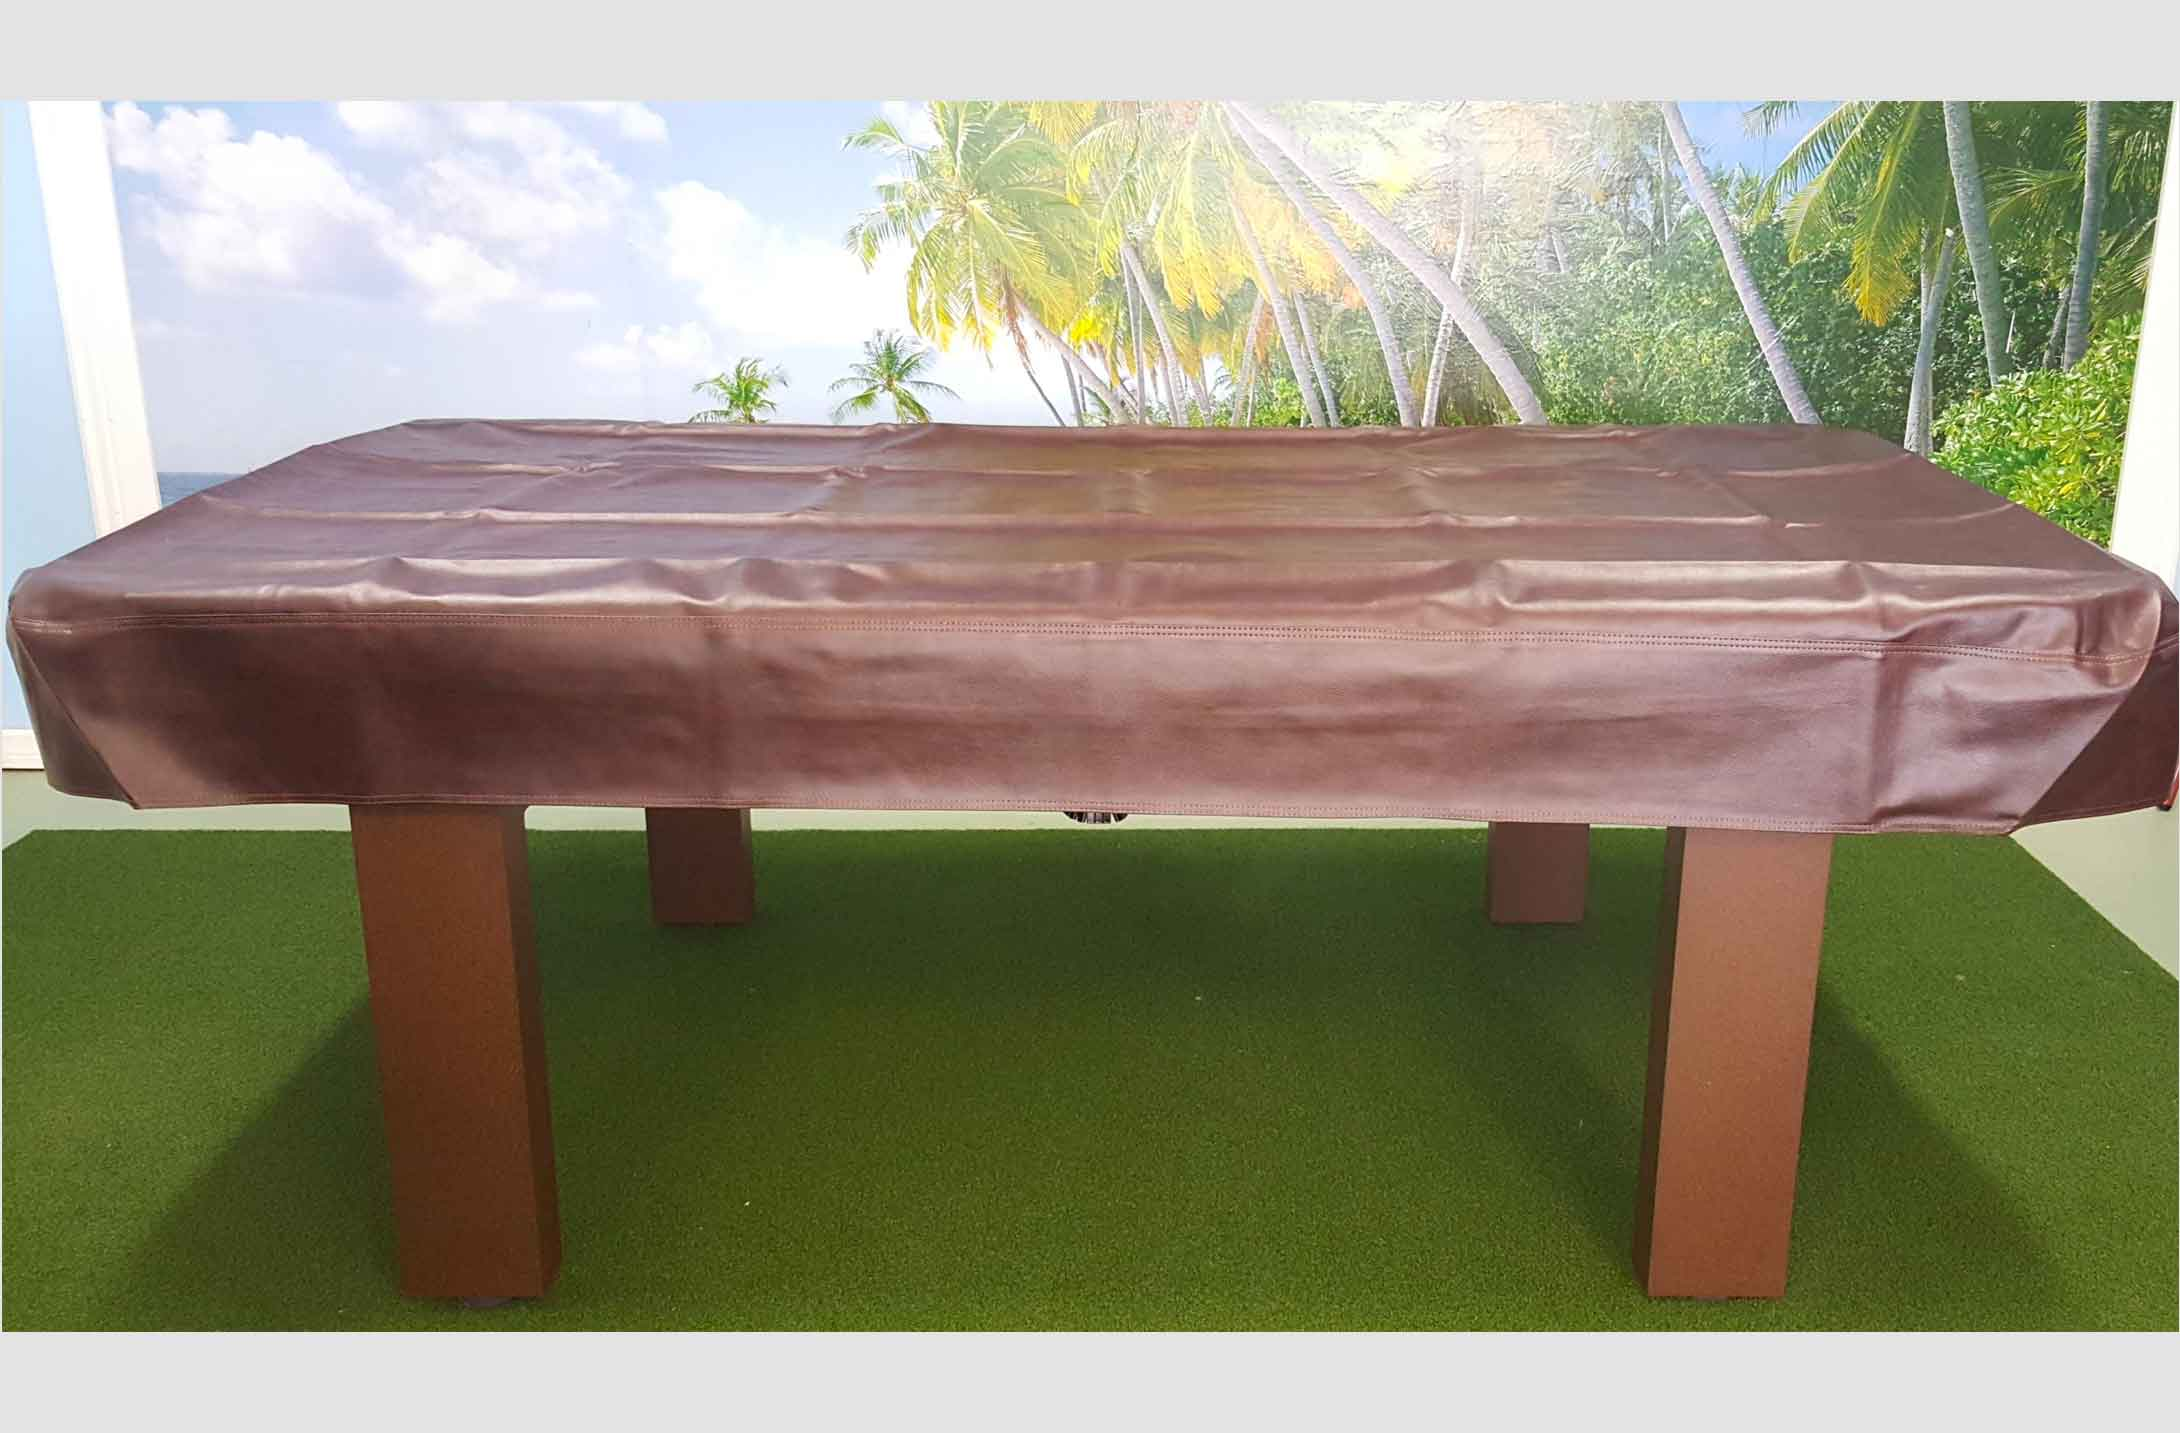 Outdoor pool table with brown, custom pool table cover from R&R Outdoors All Weather Billiards